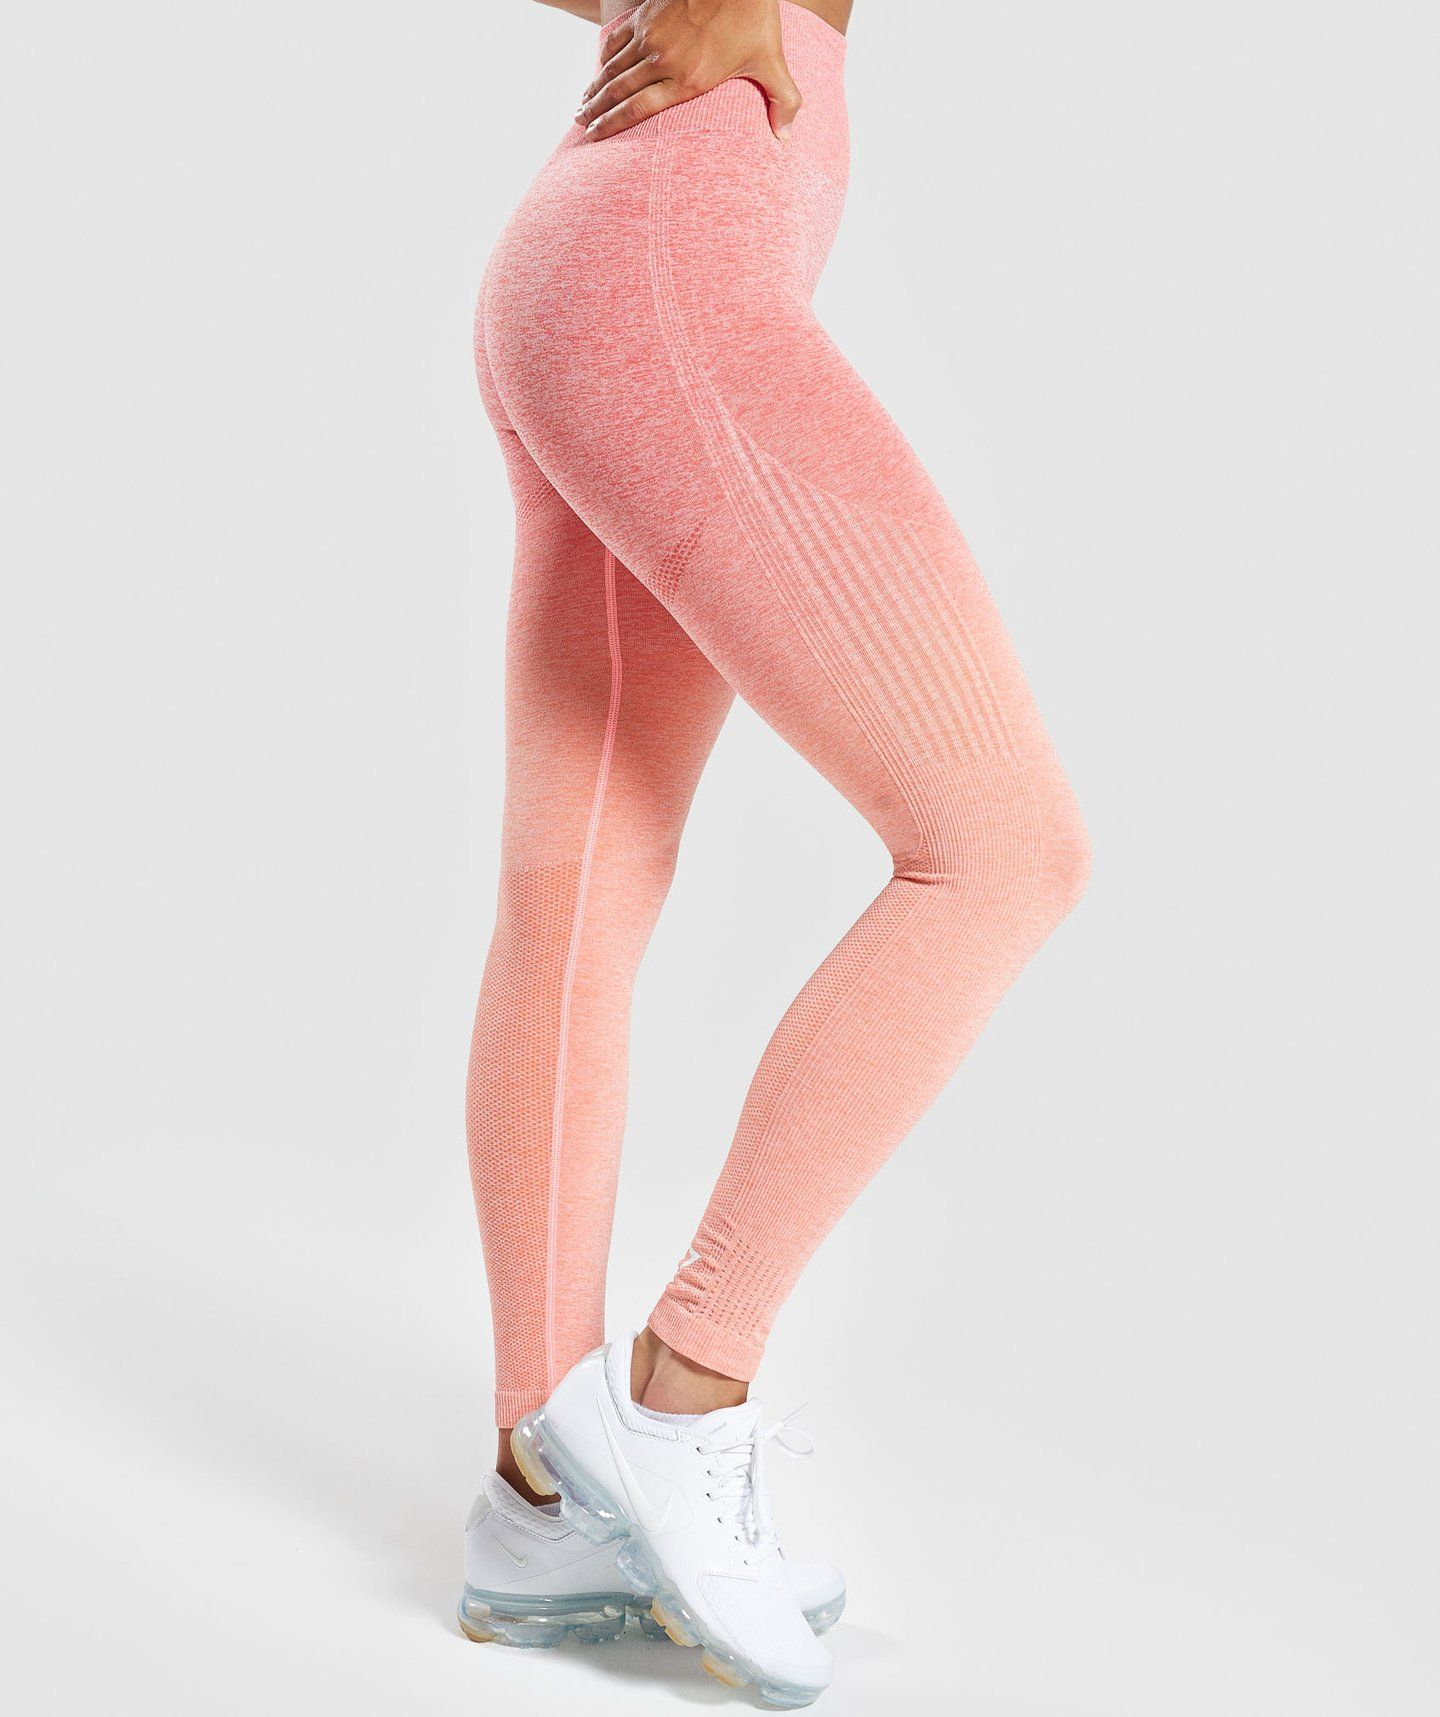 fd179eee3659e0 Gymshark Ombre Seamless Leggings - Peach Coral in 2019 ...